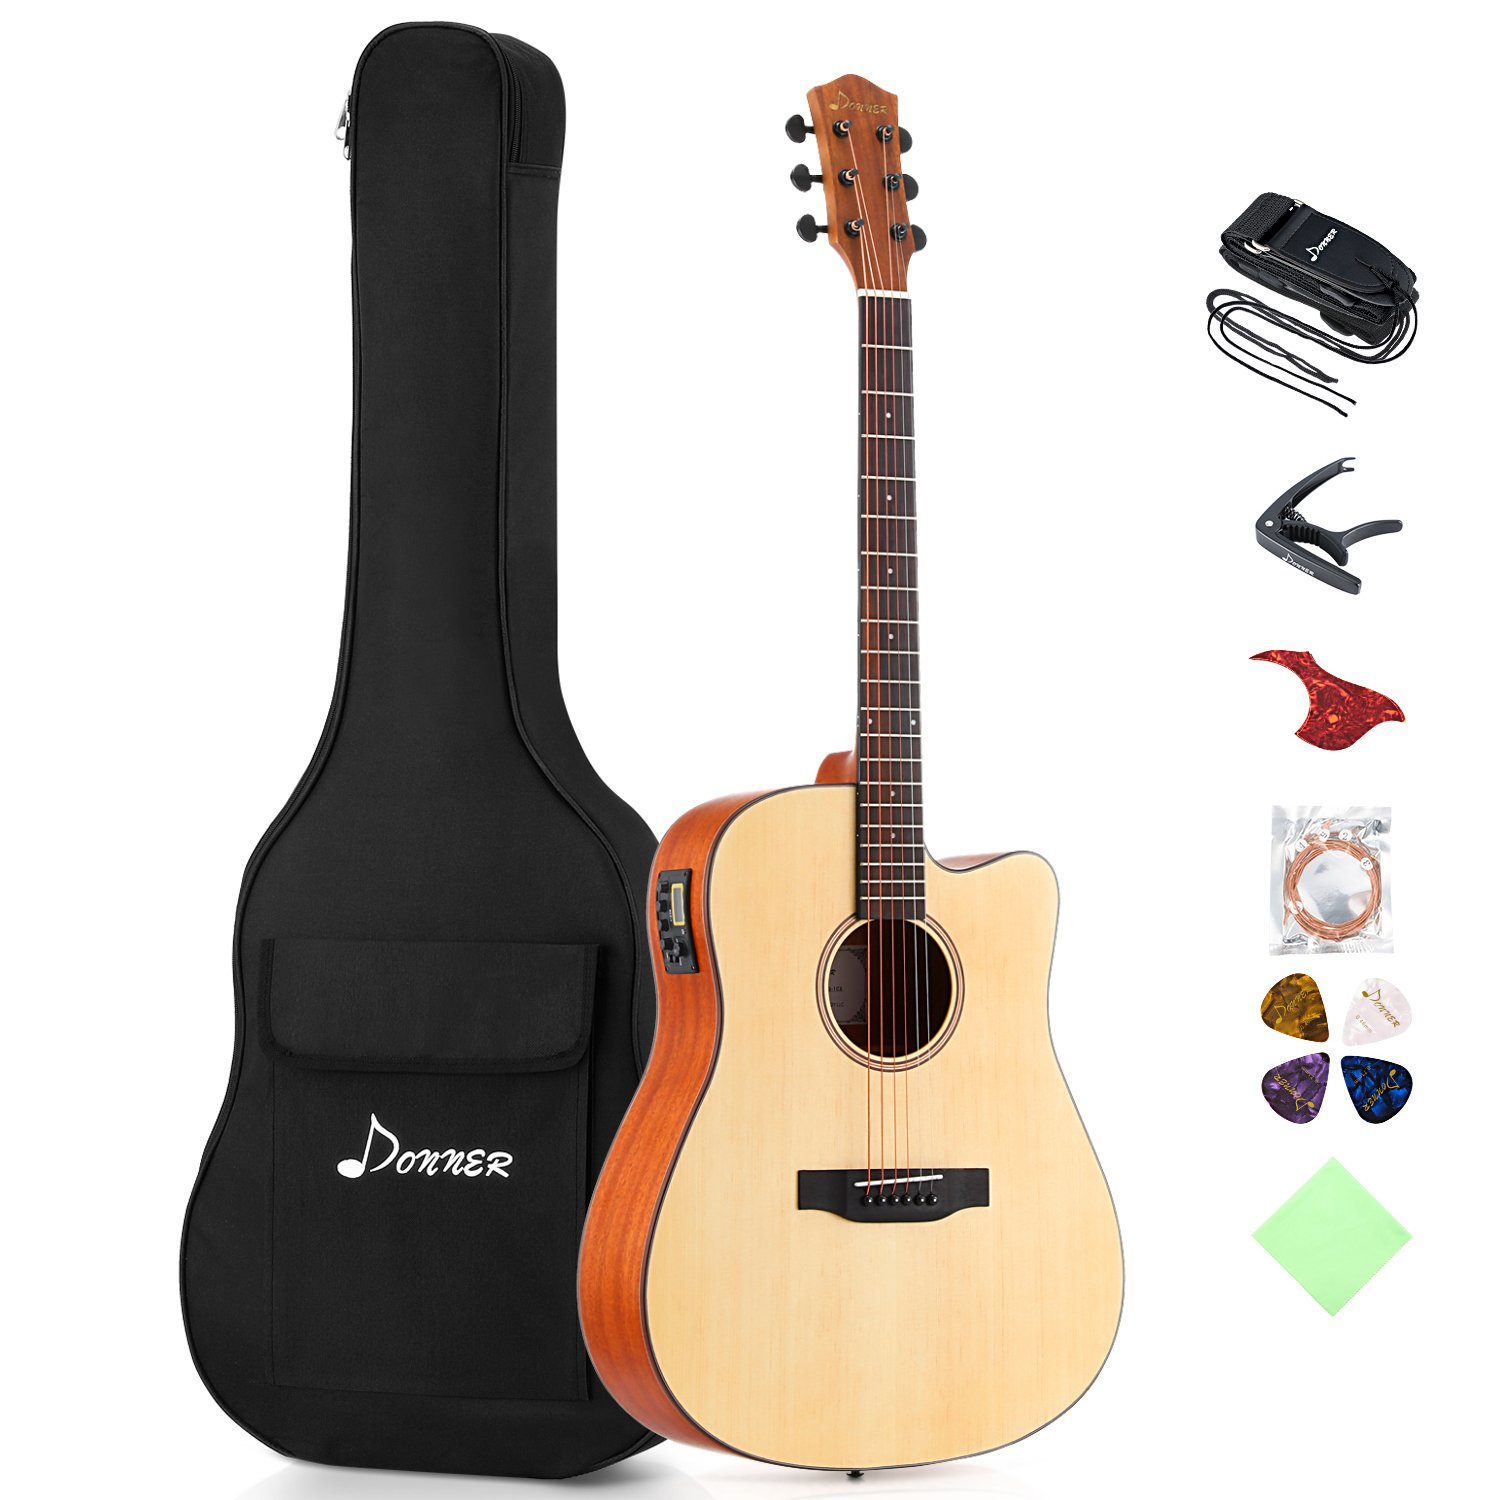 Donner DAG-1CE Electric Acoustic Guitar Cutaway 41'' Full-size Guitar Bundle Built-in Preamp with Bag Strap Tuner String